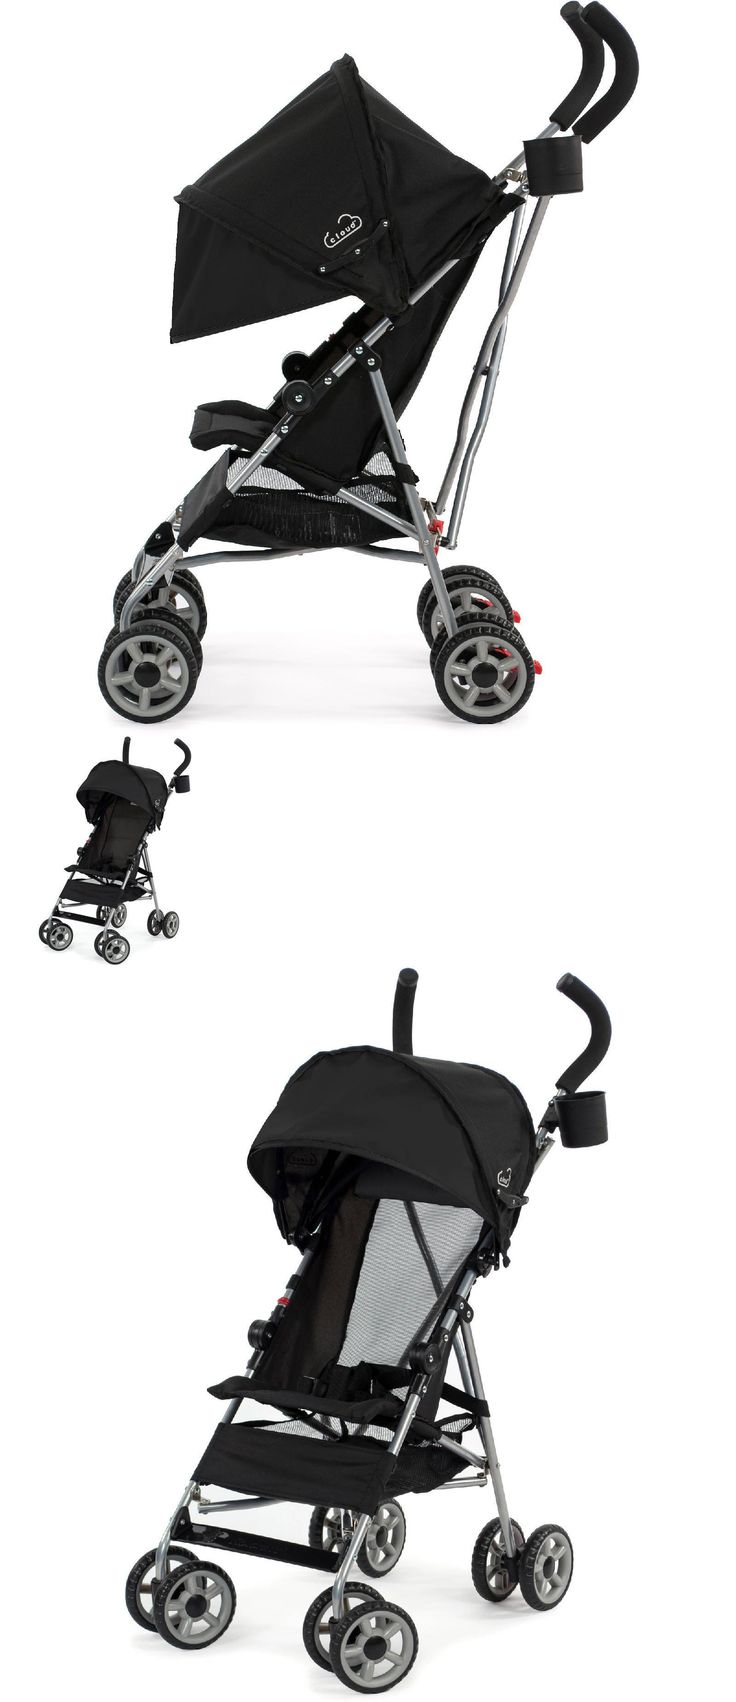 Strollers 66700: Lightweight Umbrella Stroller Baby Toddler -> BUY IT NOW ONLY: $38.48 on eBay!